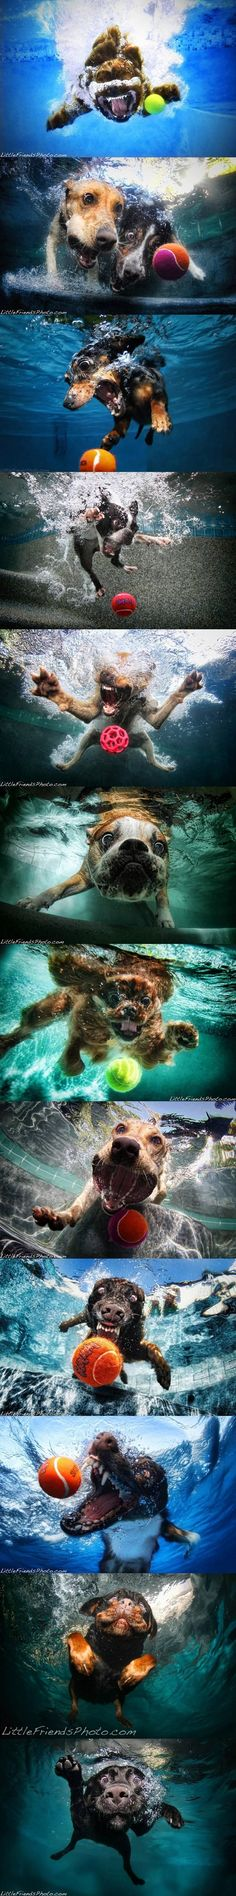 Underwater Dogs are always funny